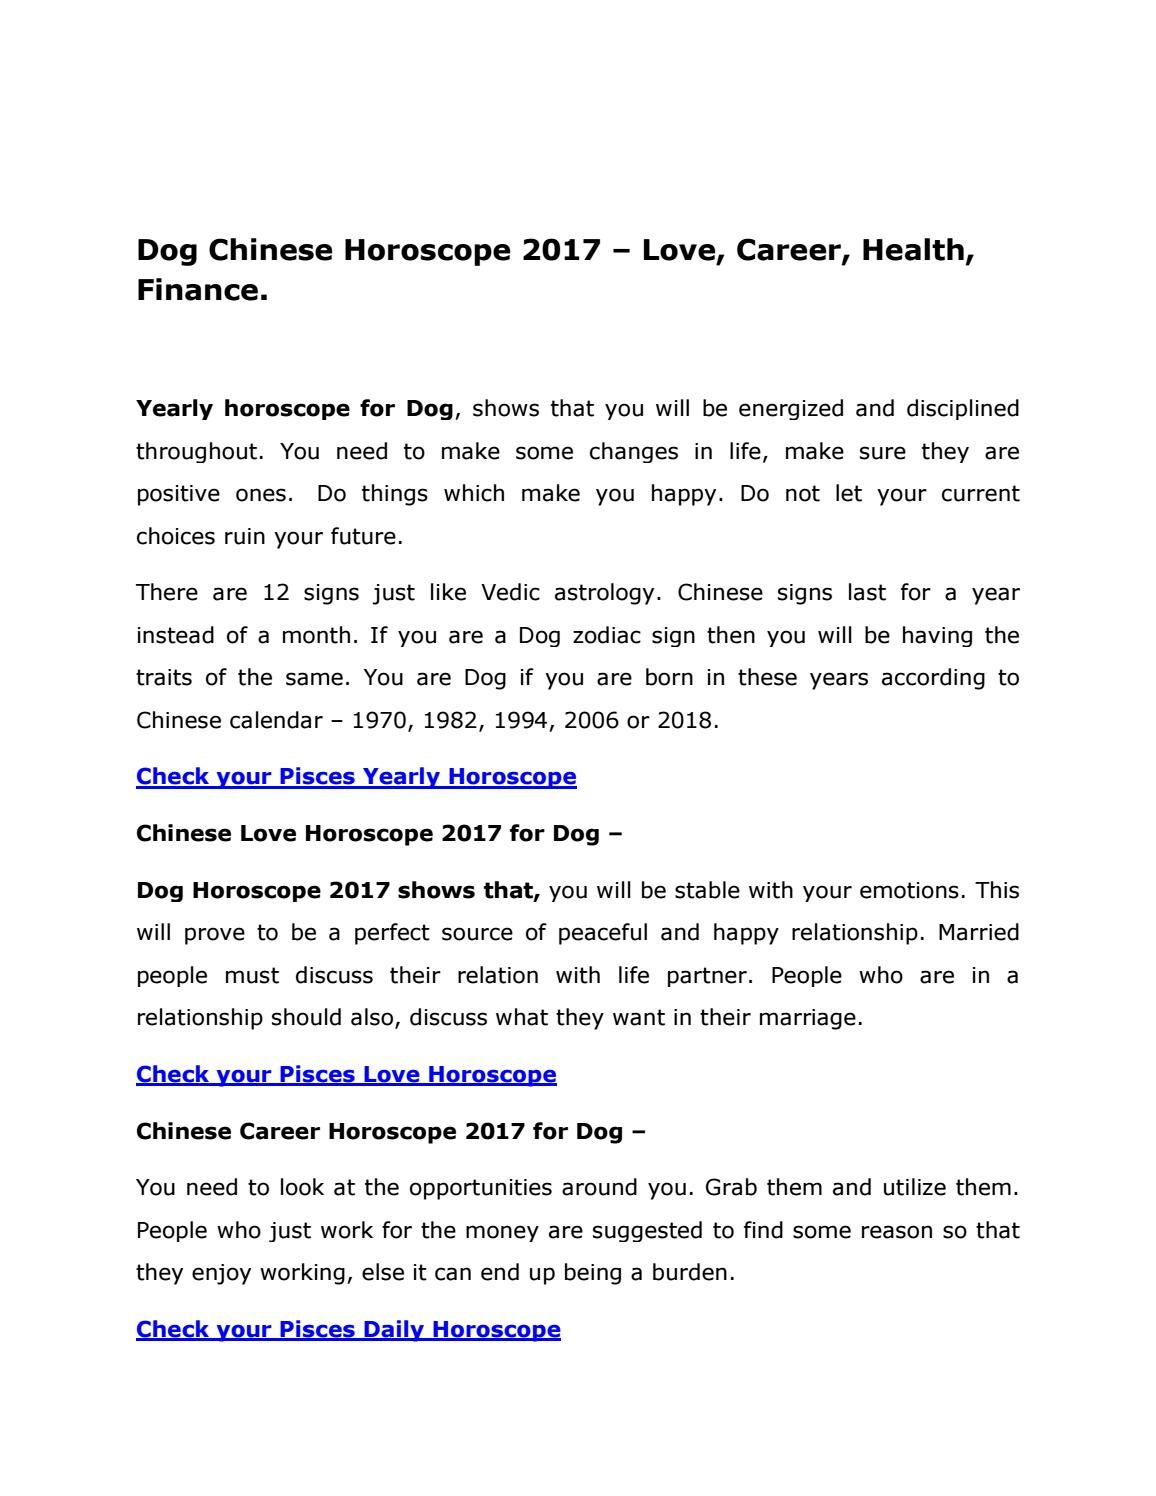 Dog chinese horoscope 2017 by AstroVidhi - issuu